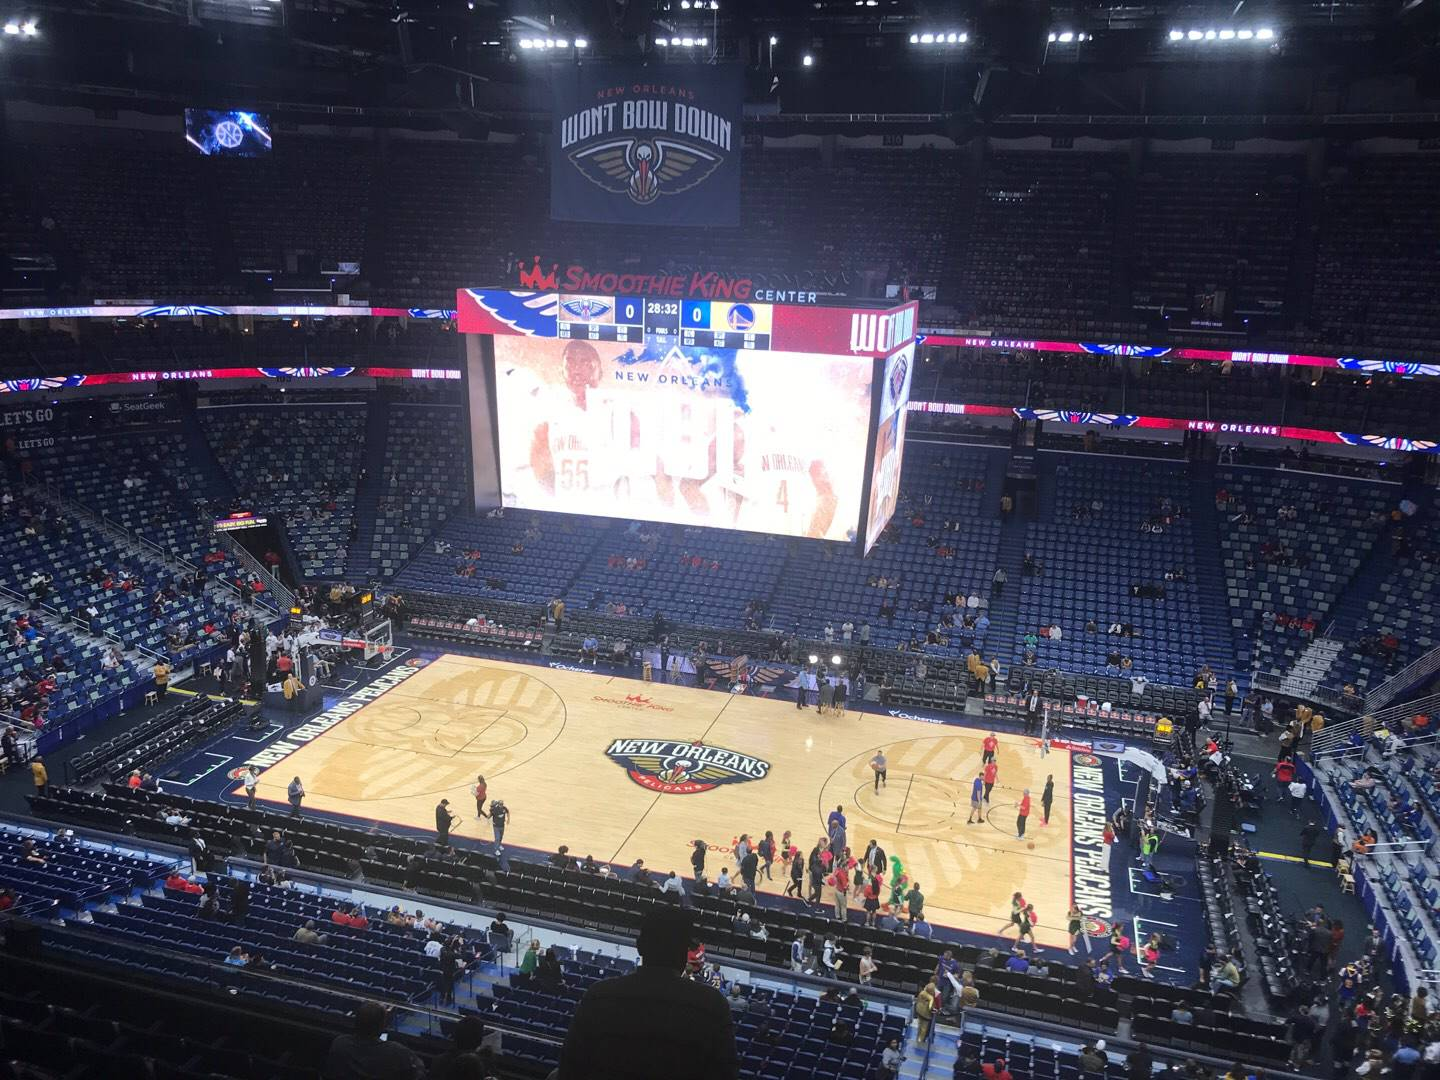 Smoothie King Center Section 331 Row 8 Seat 6